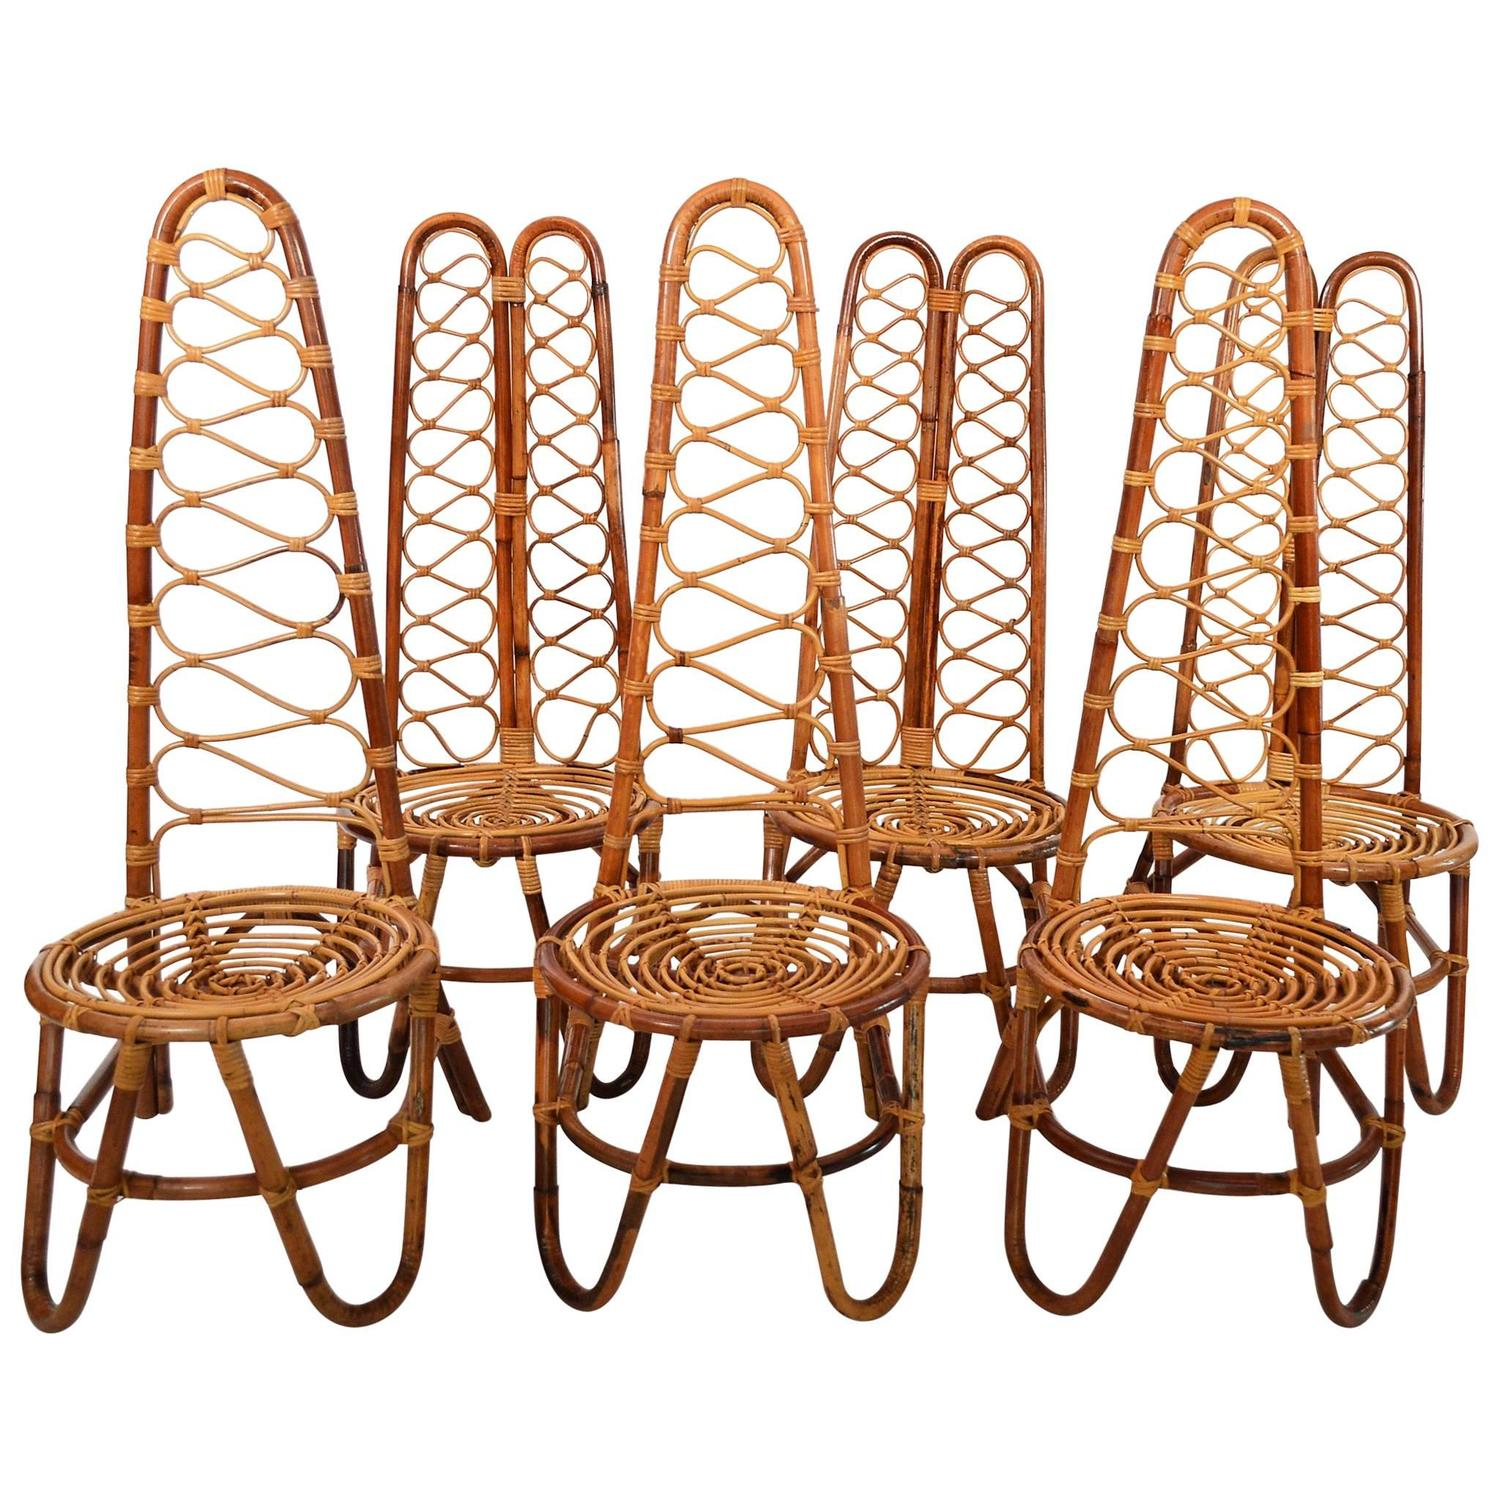 Bamboo Chairs 94 For Sale at 1stdibs